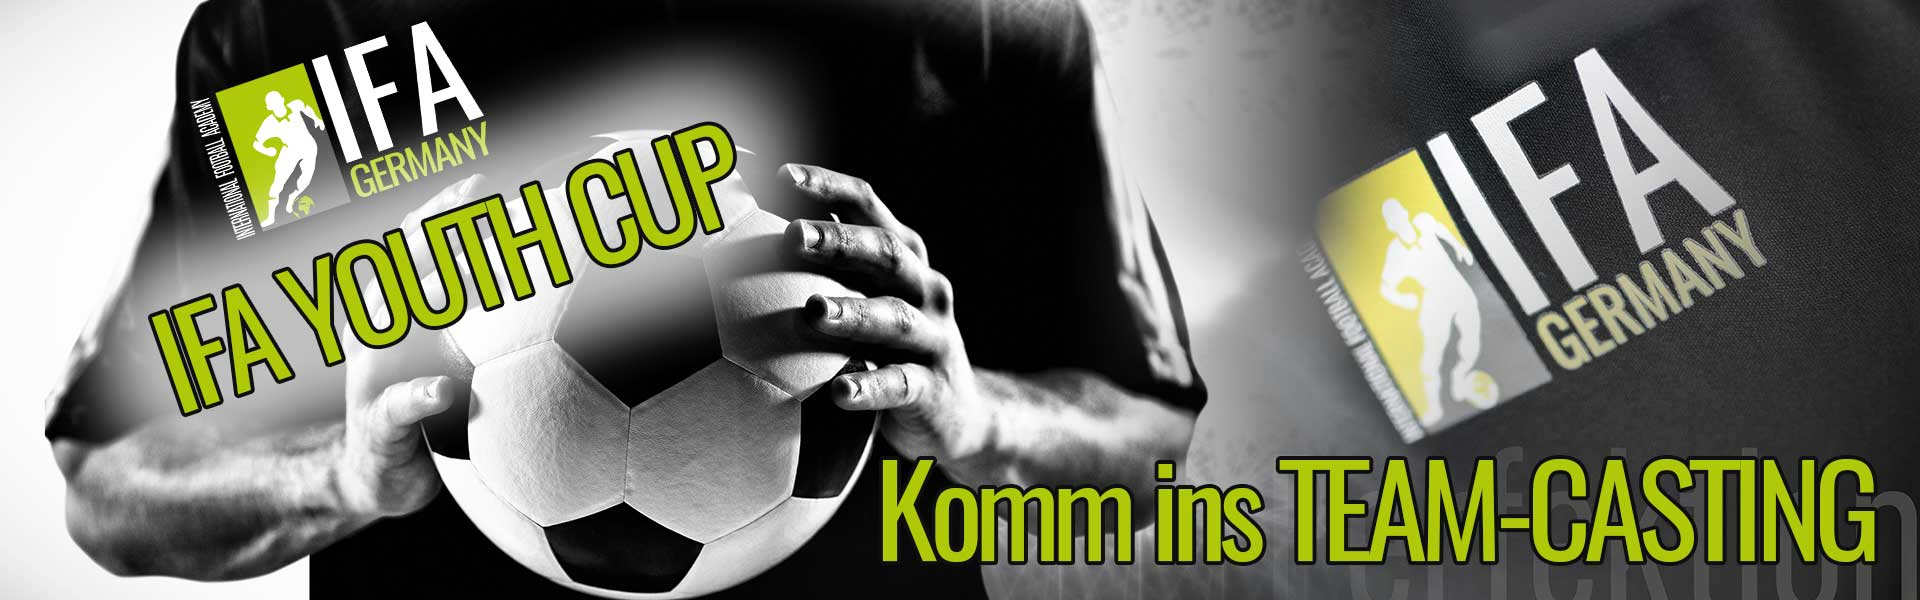 IFA - Football Youth-Cup - Komm ins TEAM CASTING